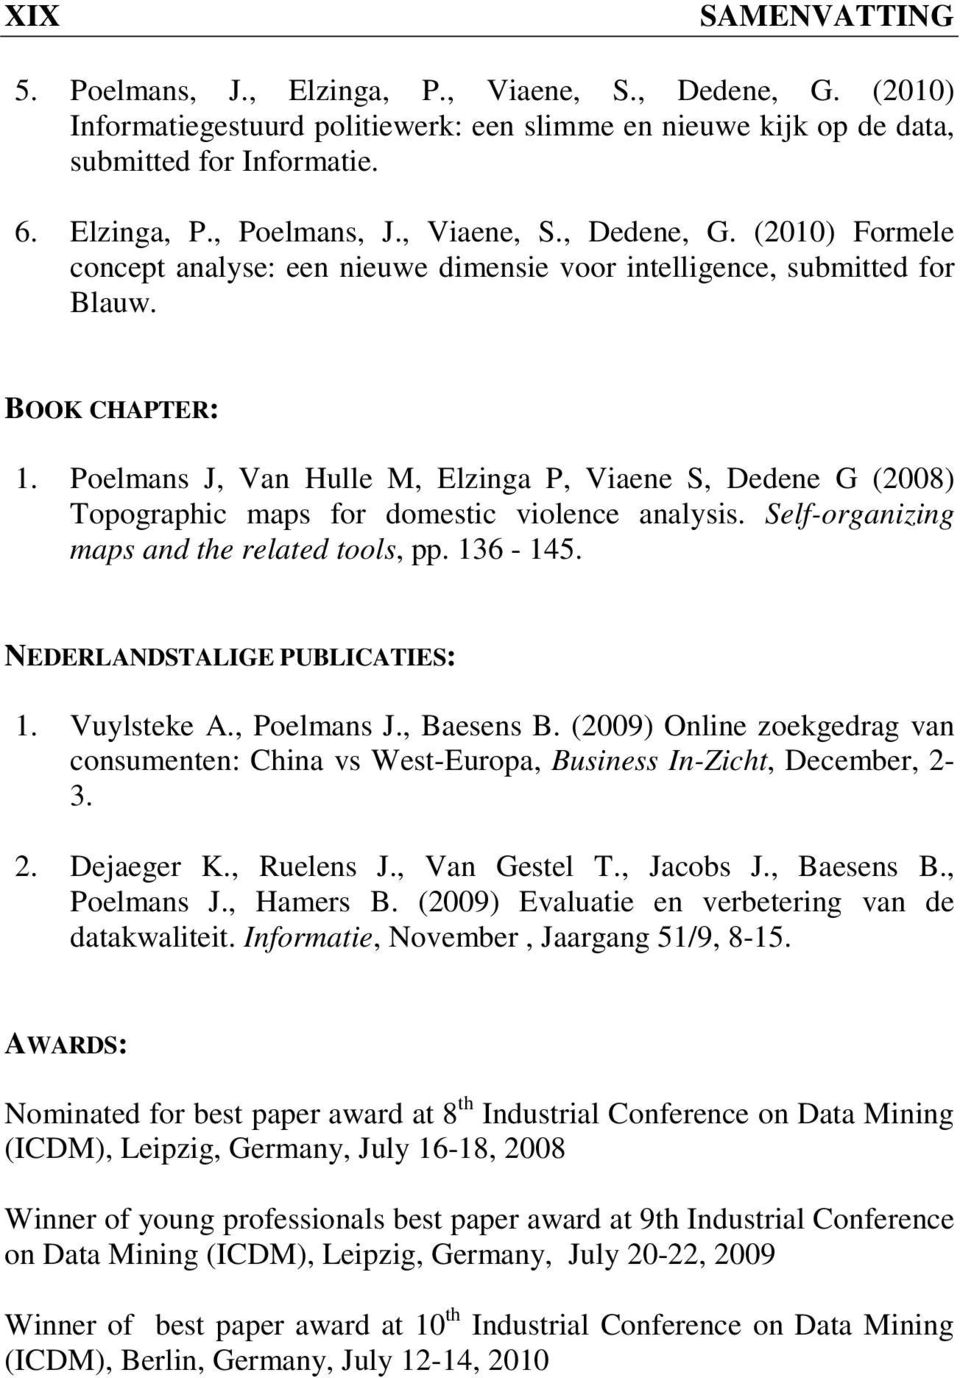 Poelmans J, Van Hulle M, Elzinga P, Viaene S, Dedene G (2008) Topographic maps for domestic violence analysis. Self-organizing maps and the related tools, pp. 136-145. NEDERLANDSTALIGE PUBLICATIES: 1.